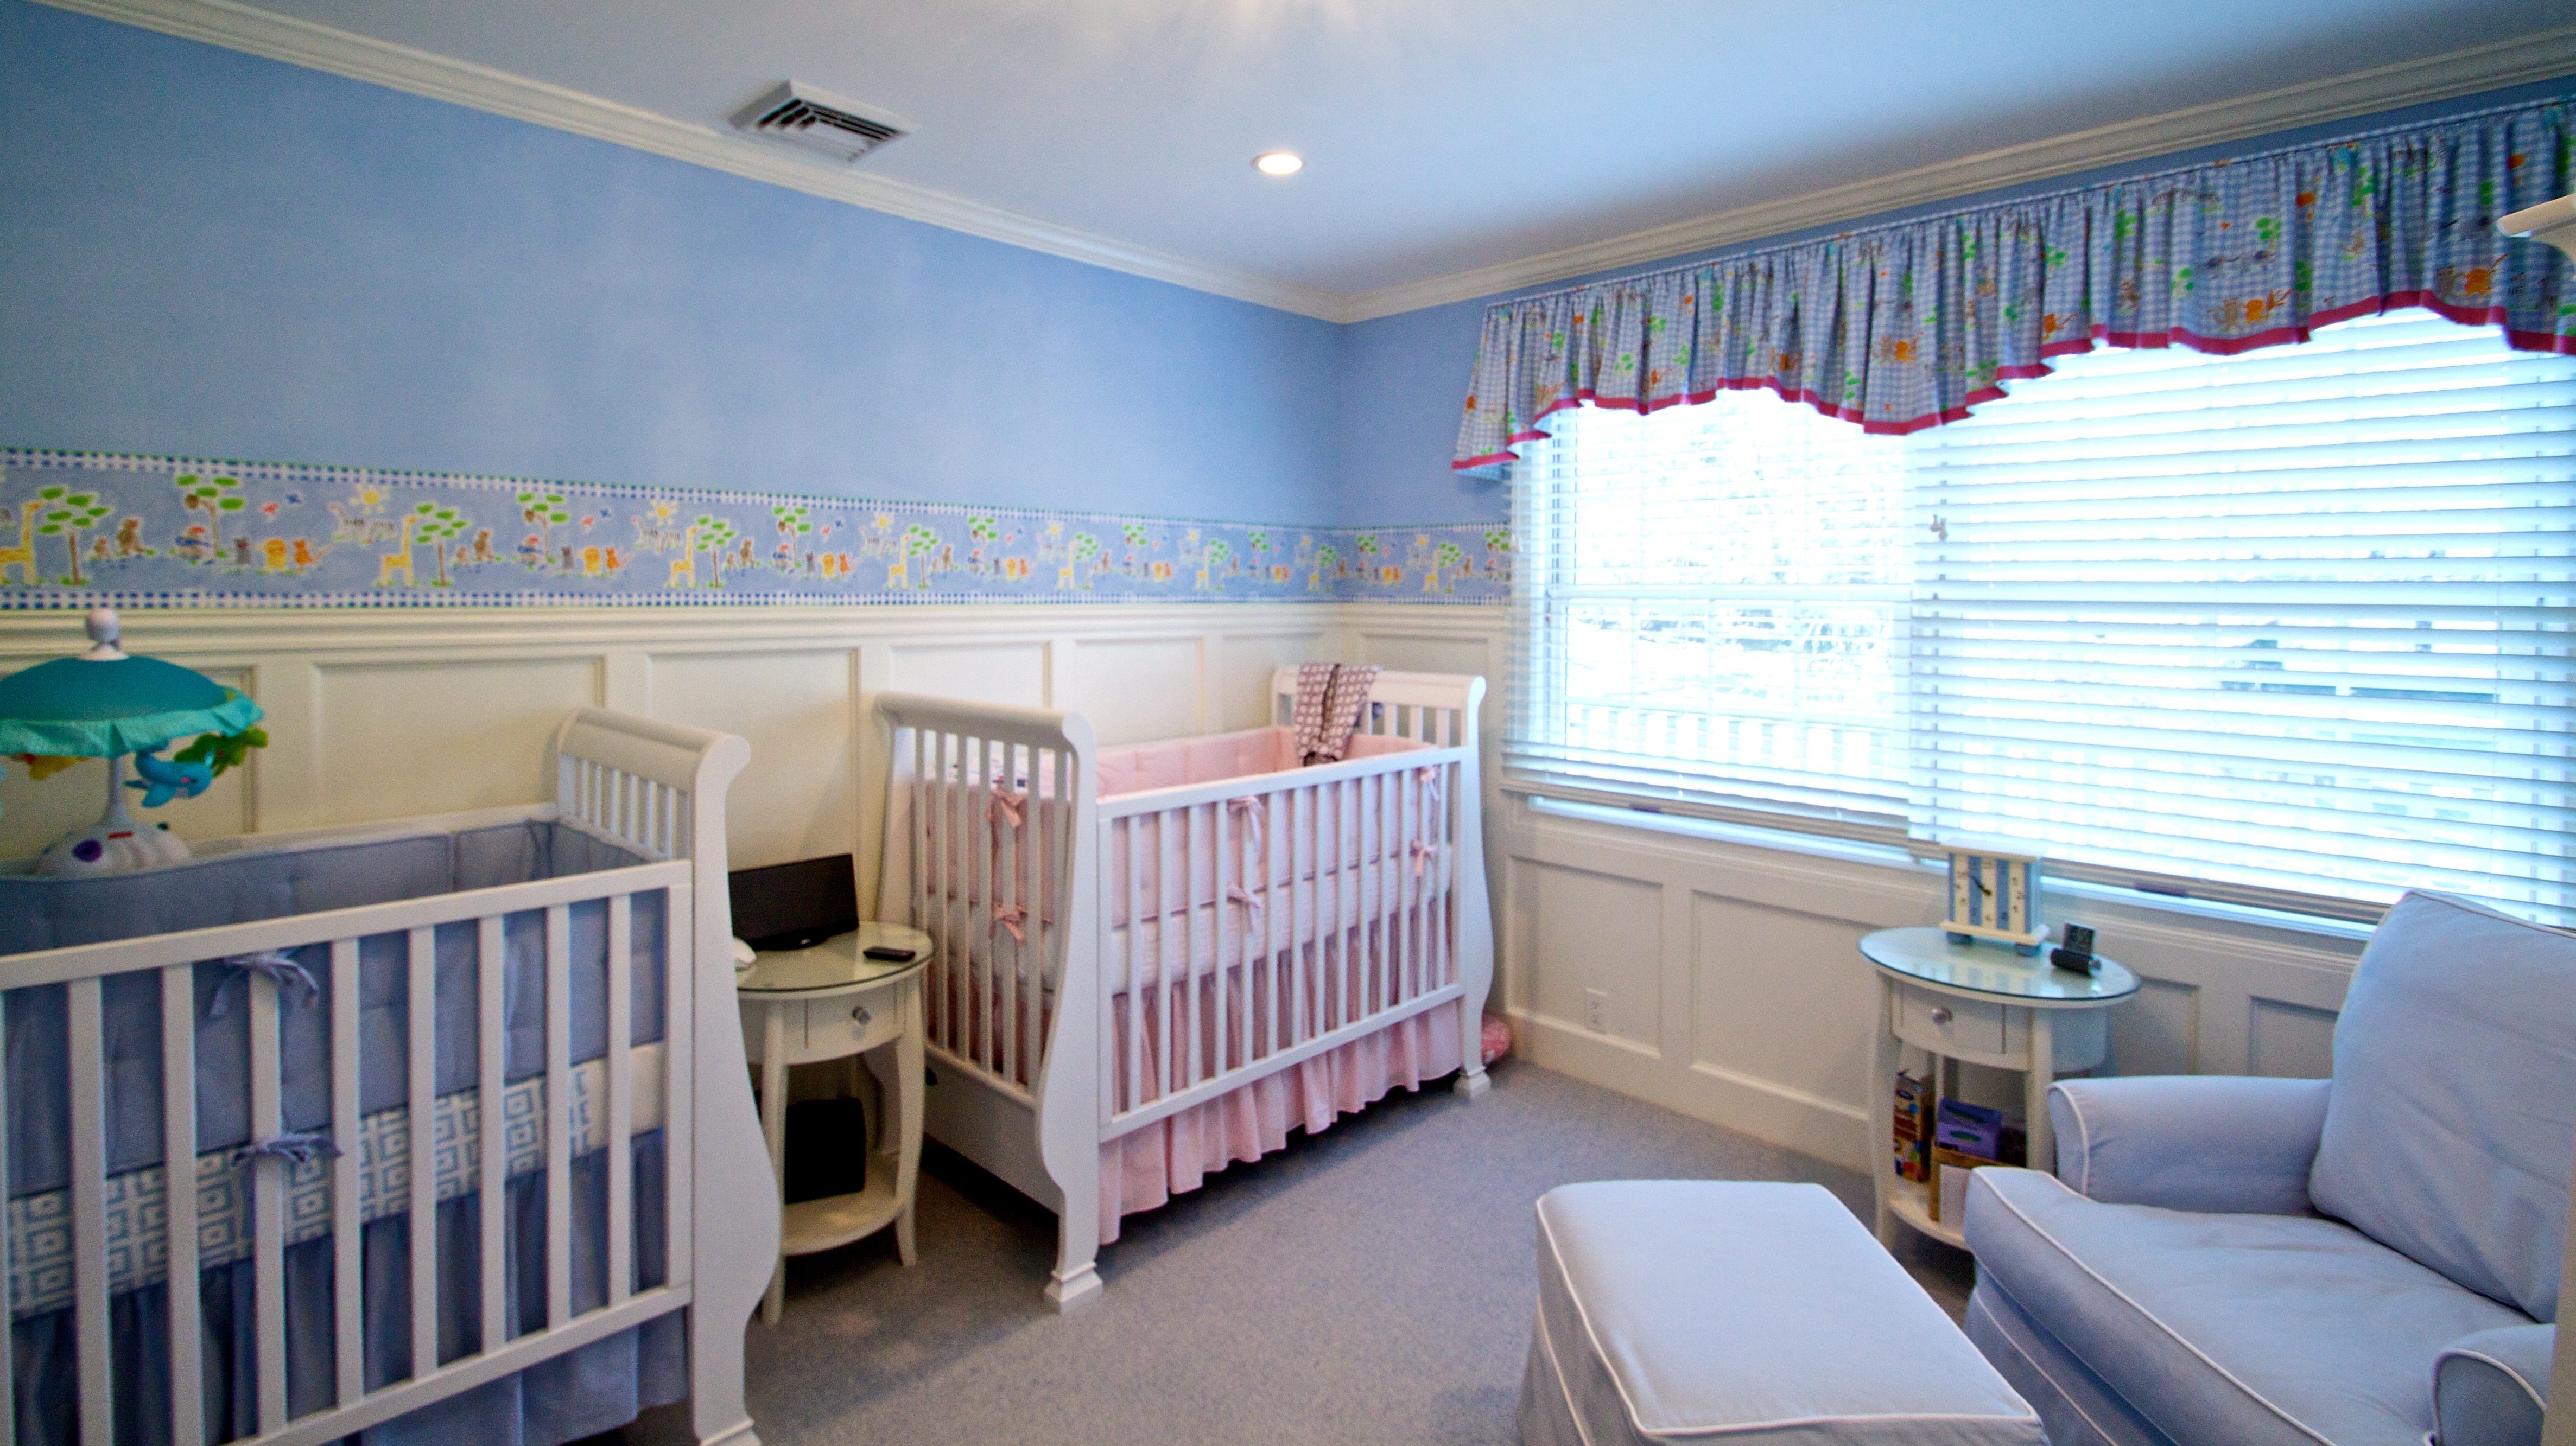 Twin nursery for a boy and a girl